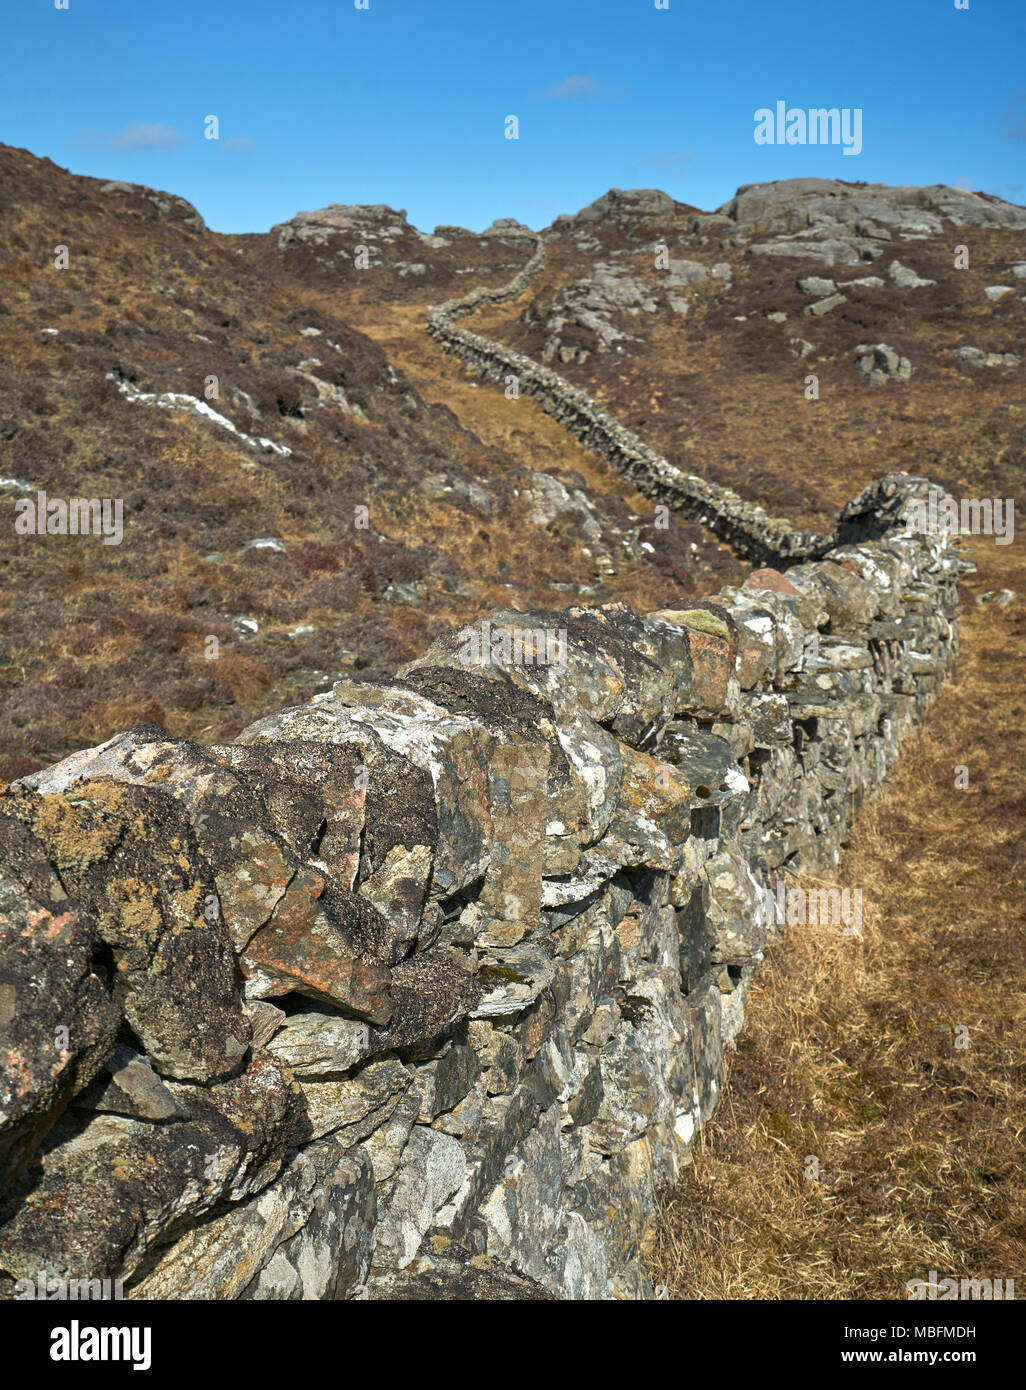 Unusual stone wall constructed of granite boulders winds its way through the rocky landscape of Uig on The Isle of Lewis, Scotland. - Stock Image